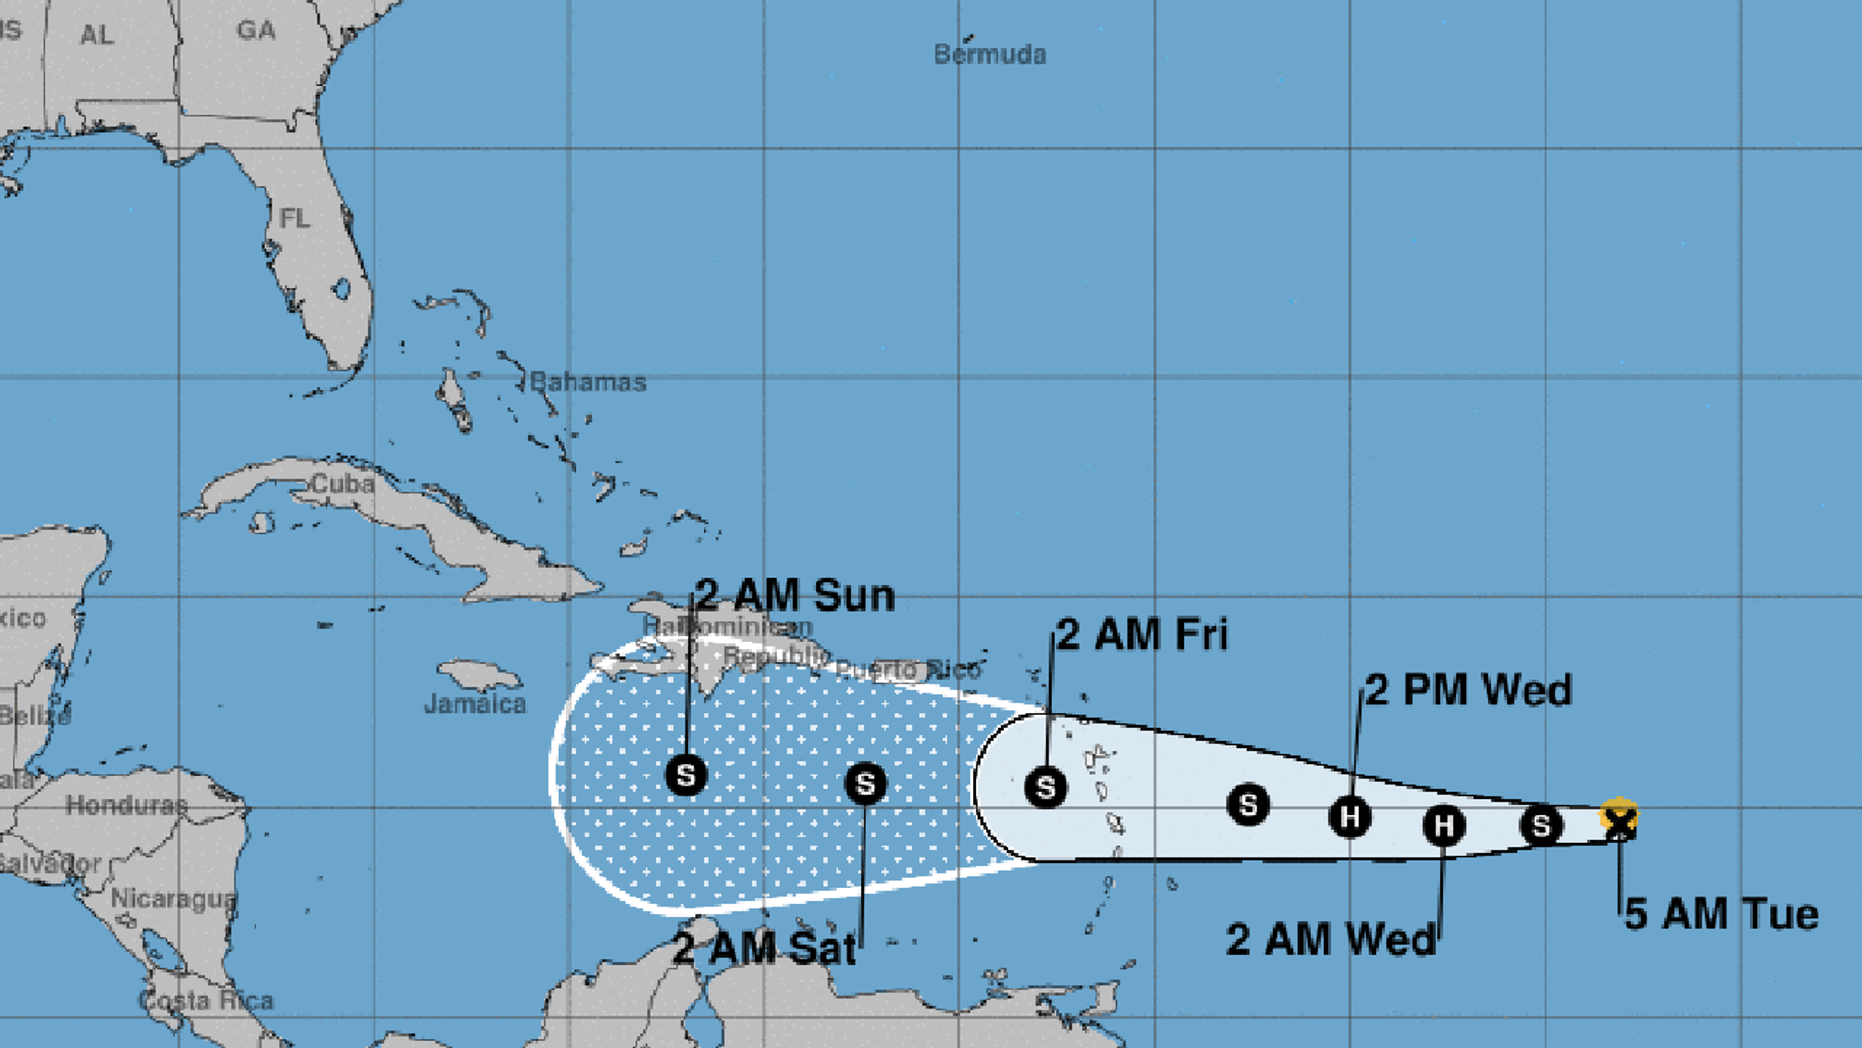 Tropical Storm Isaac is expected to be at hurricane strength when it reaches the Lesser Antilles on Thursday.